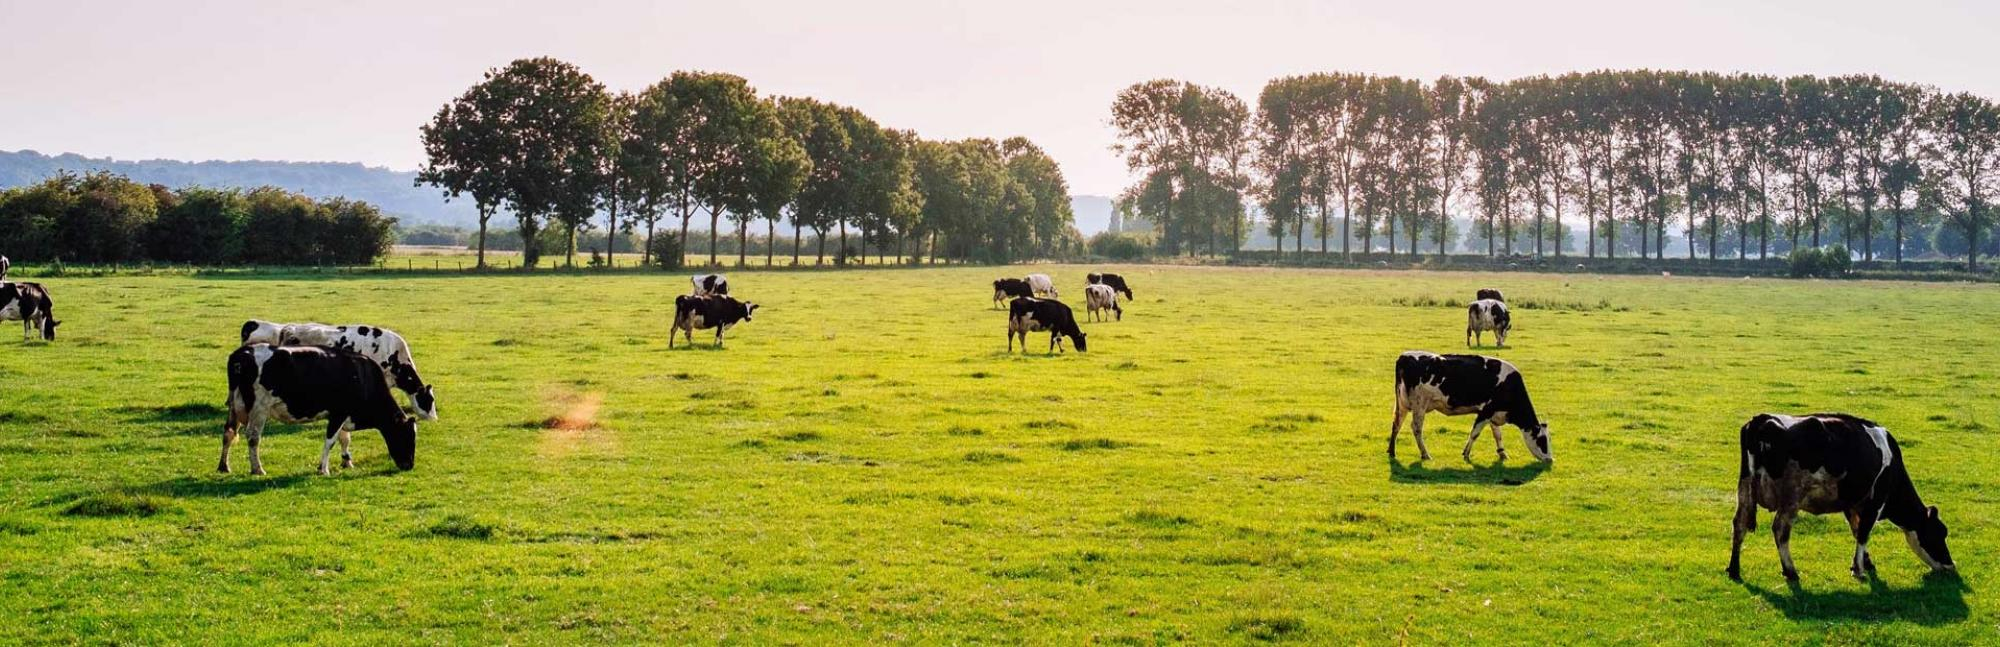 Tree-lined field of cows grazing